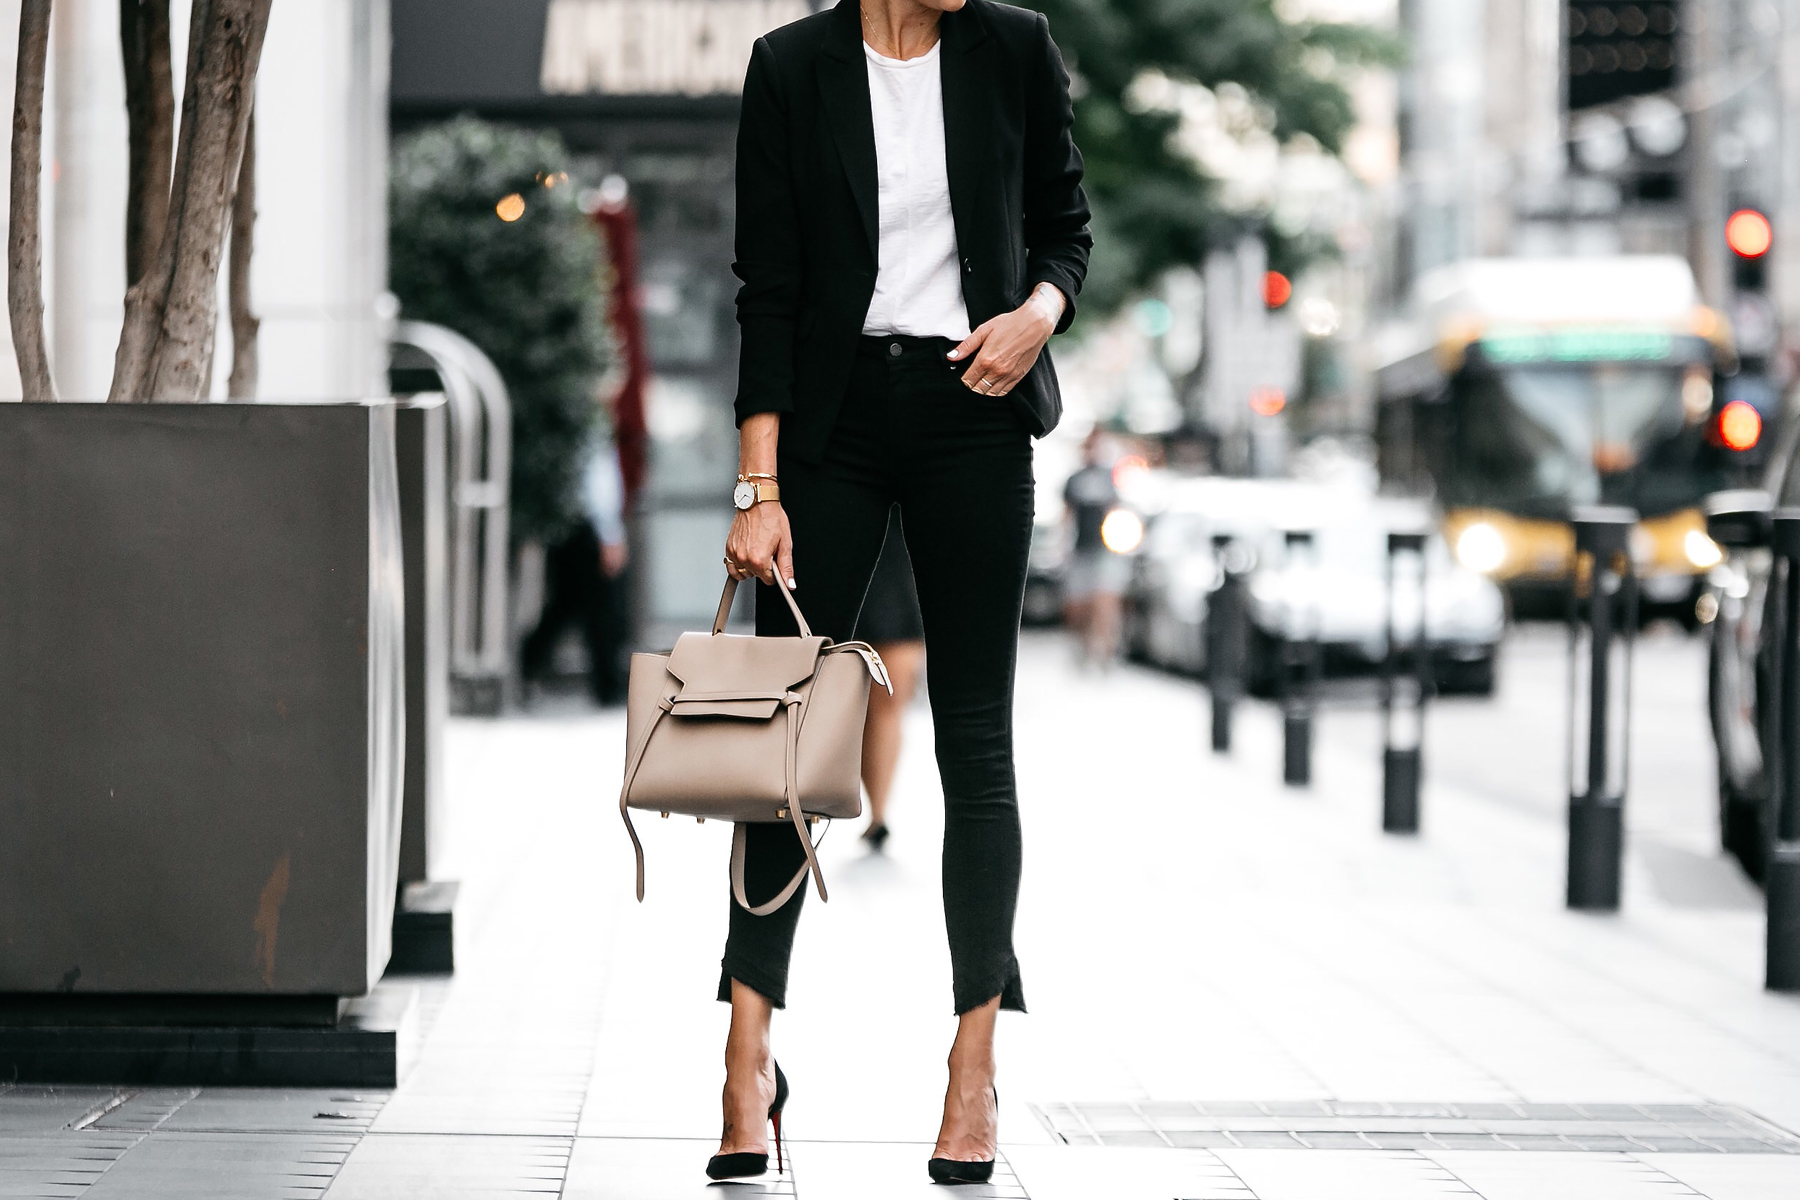 Nordstrom Black Blazer White Tshirt Black Raw Hem Jeans Outfit Christian Louboutin Black Pumps Celine Belt Bag Fashion Jackson Dallas Blogger Fashion Blogger Street Style